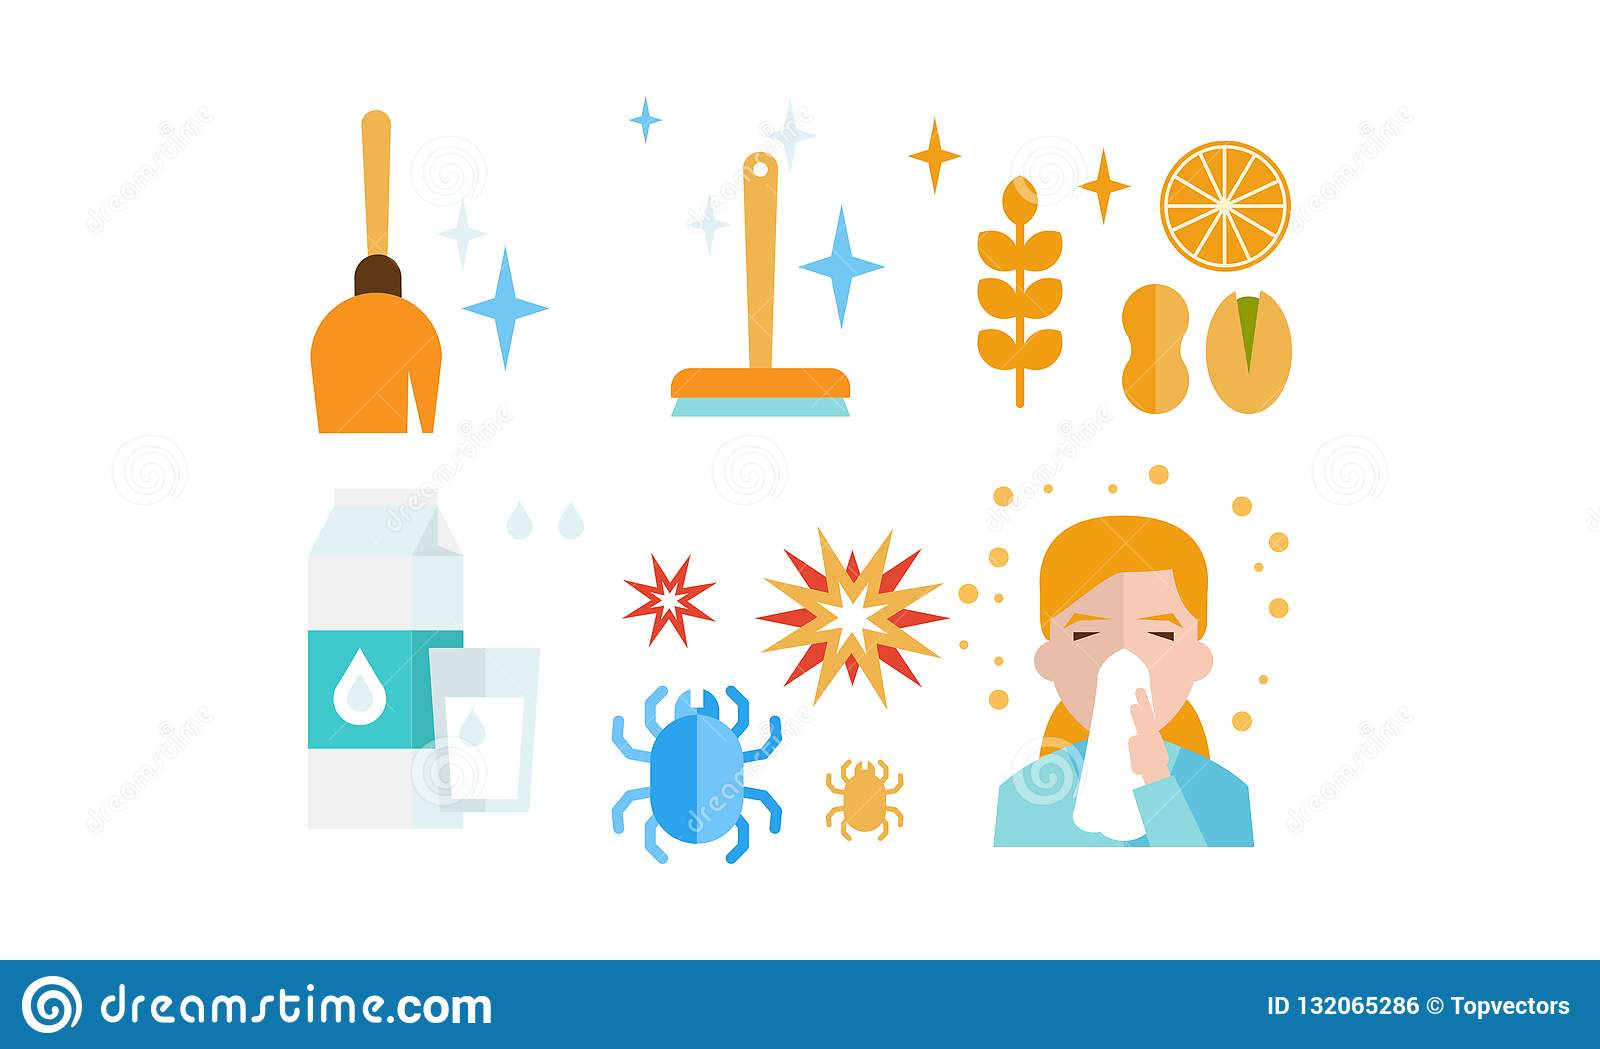 Allergy symptoms and treatment icons set, allergic reaction to dust, food, dairy products, insects, allergic rhinitis